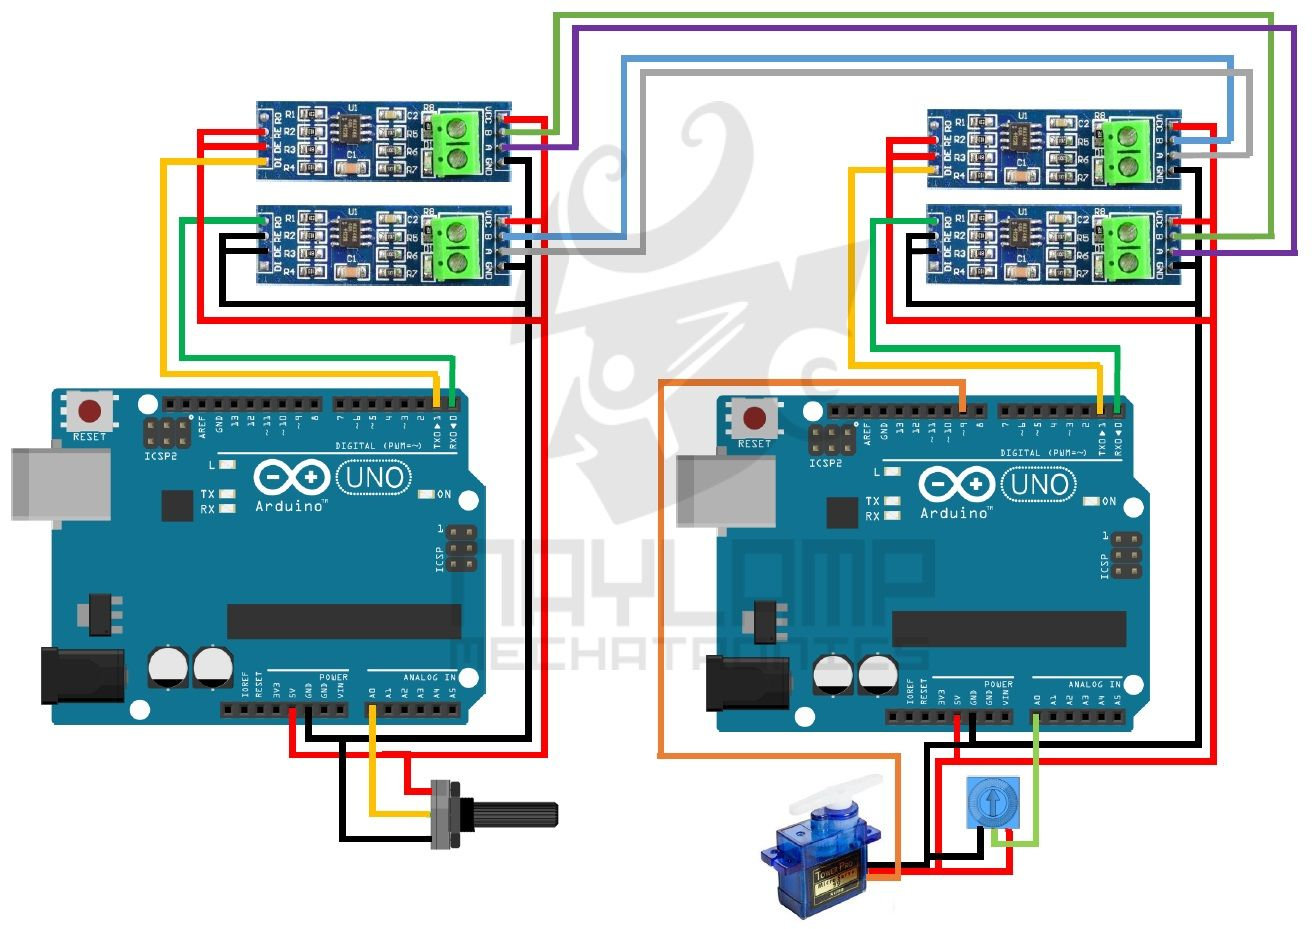 e93858fe50417e0c7e4ba8dda79cbe16 arduino rs485 full duplex arduino pinterest arduino rs485 RS 485 Pinout Diagram at bayanpartner.co